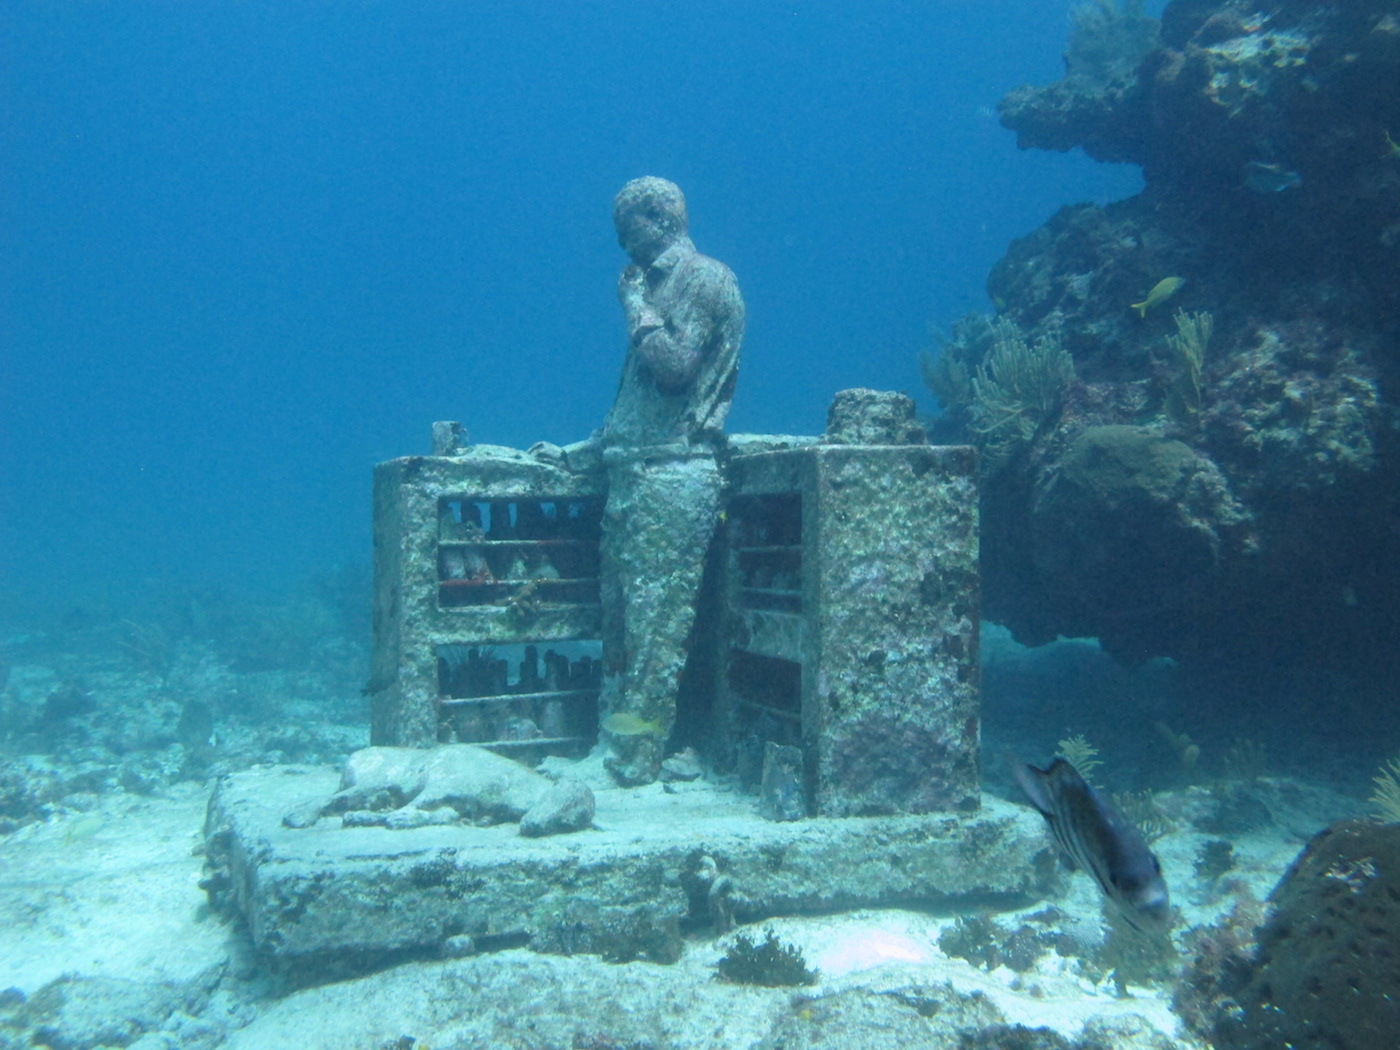 MUSA-Underwater-Museum-Snorkeling-Scuba-Diving-Tours-Isla-Mujeres-Carey-Dive-Center-3